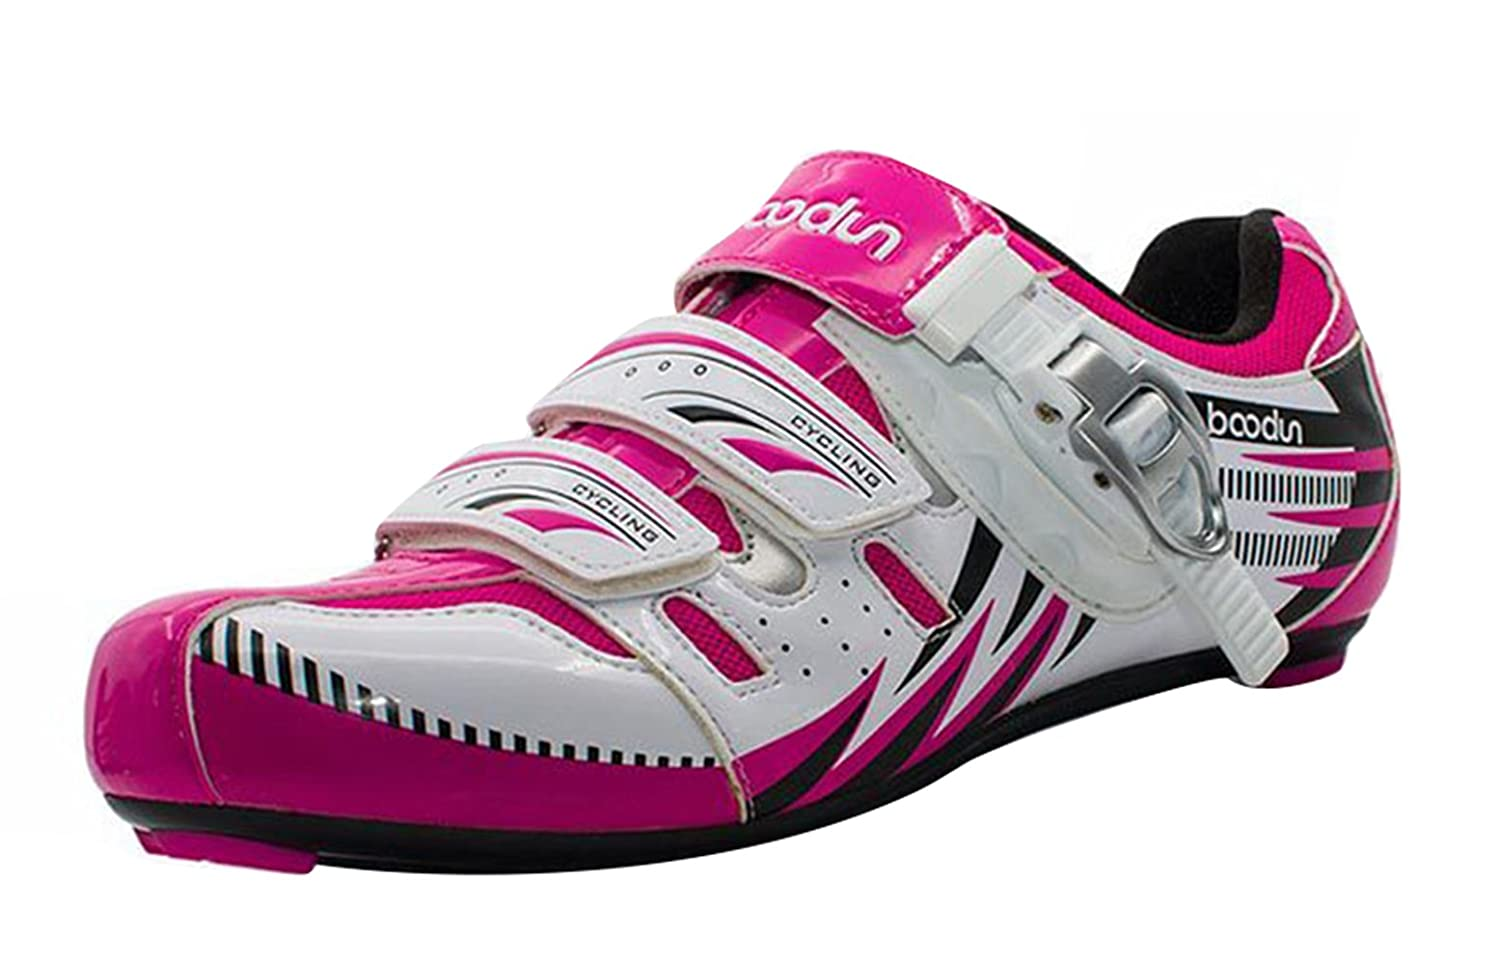 LIVEINU Women's Bike Shoe Riding Shoes